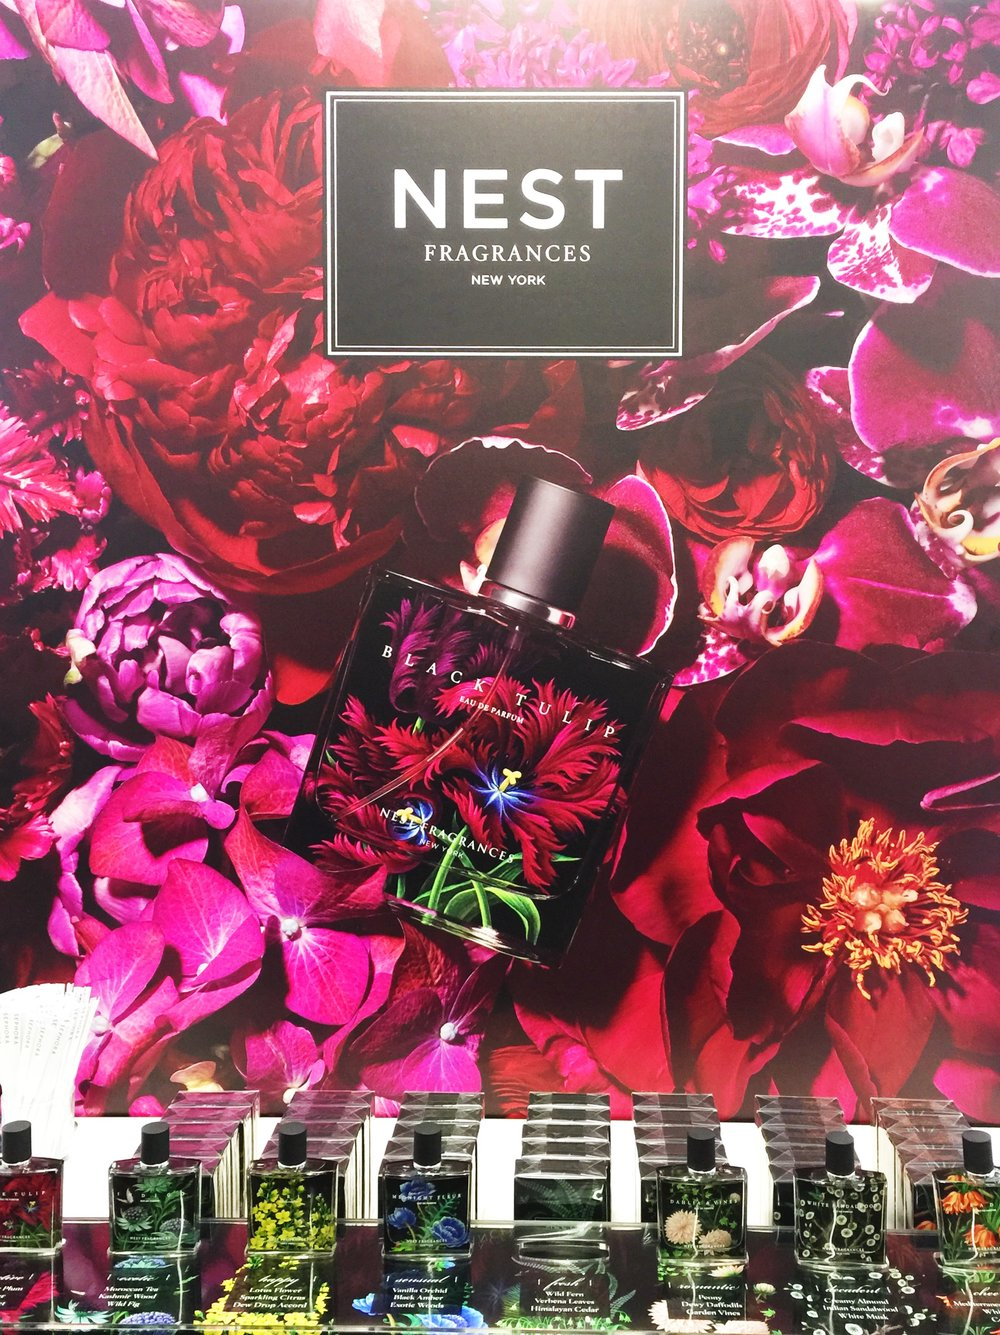 Marisa Robinson Beauty Blogger Sephora Exclusive Brands Showcase 2017 NEST Fragrances